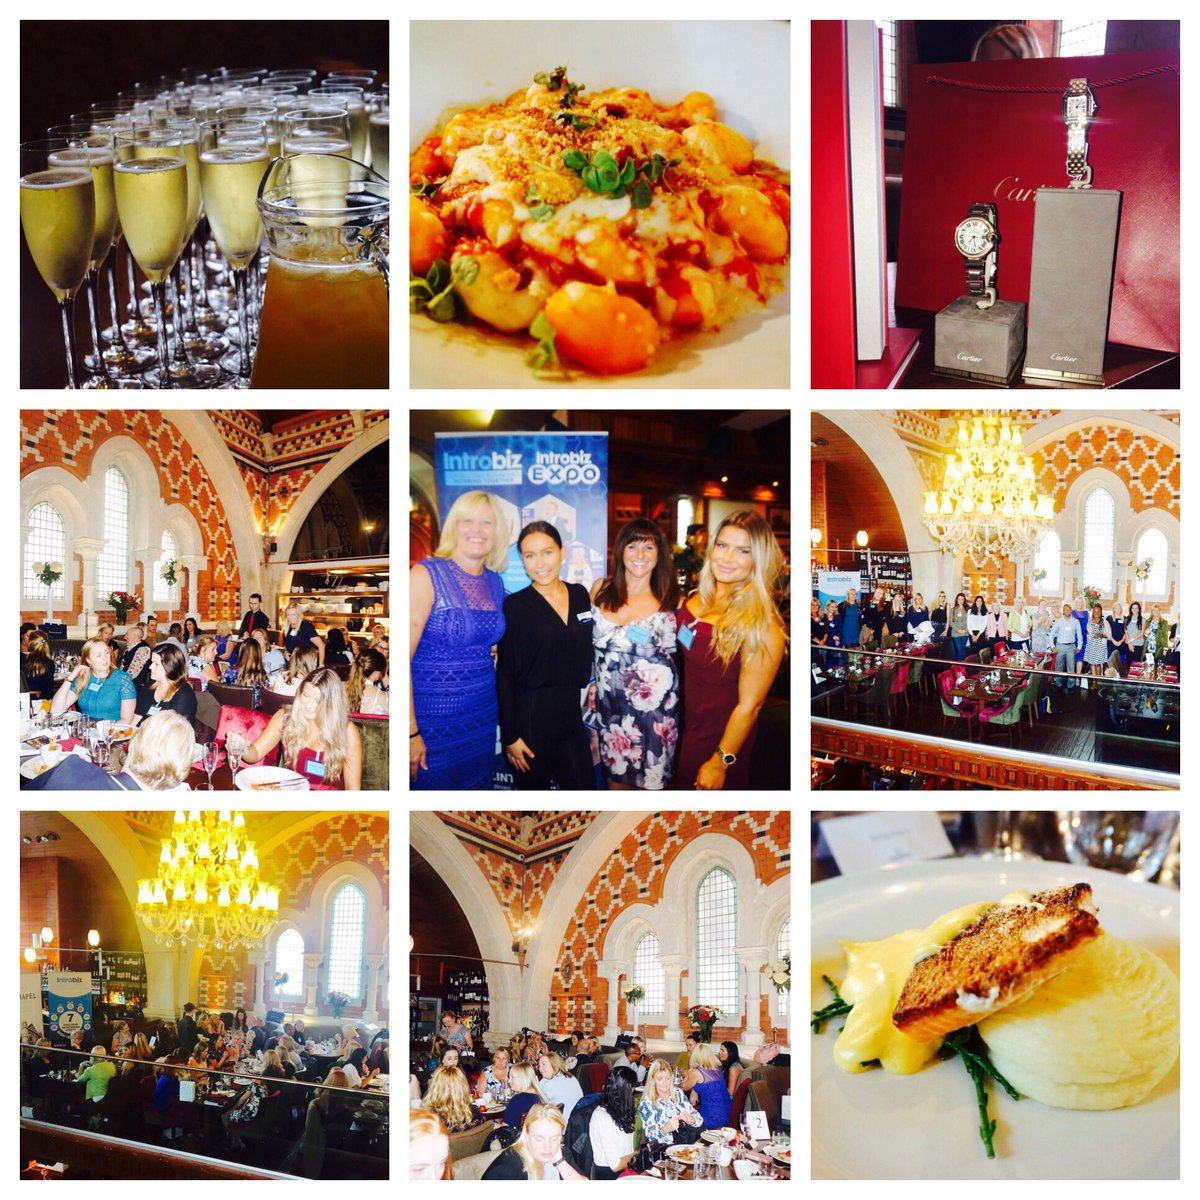 Special thank you to amazing team @chapel1877bar for beautiful food &amp; champagne yesterday&#39;s #Introbiz ladies #networking lunch event <br>http://pic.twitter.com/c942qrRK45